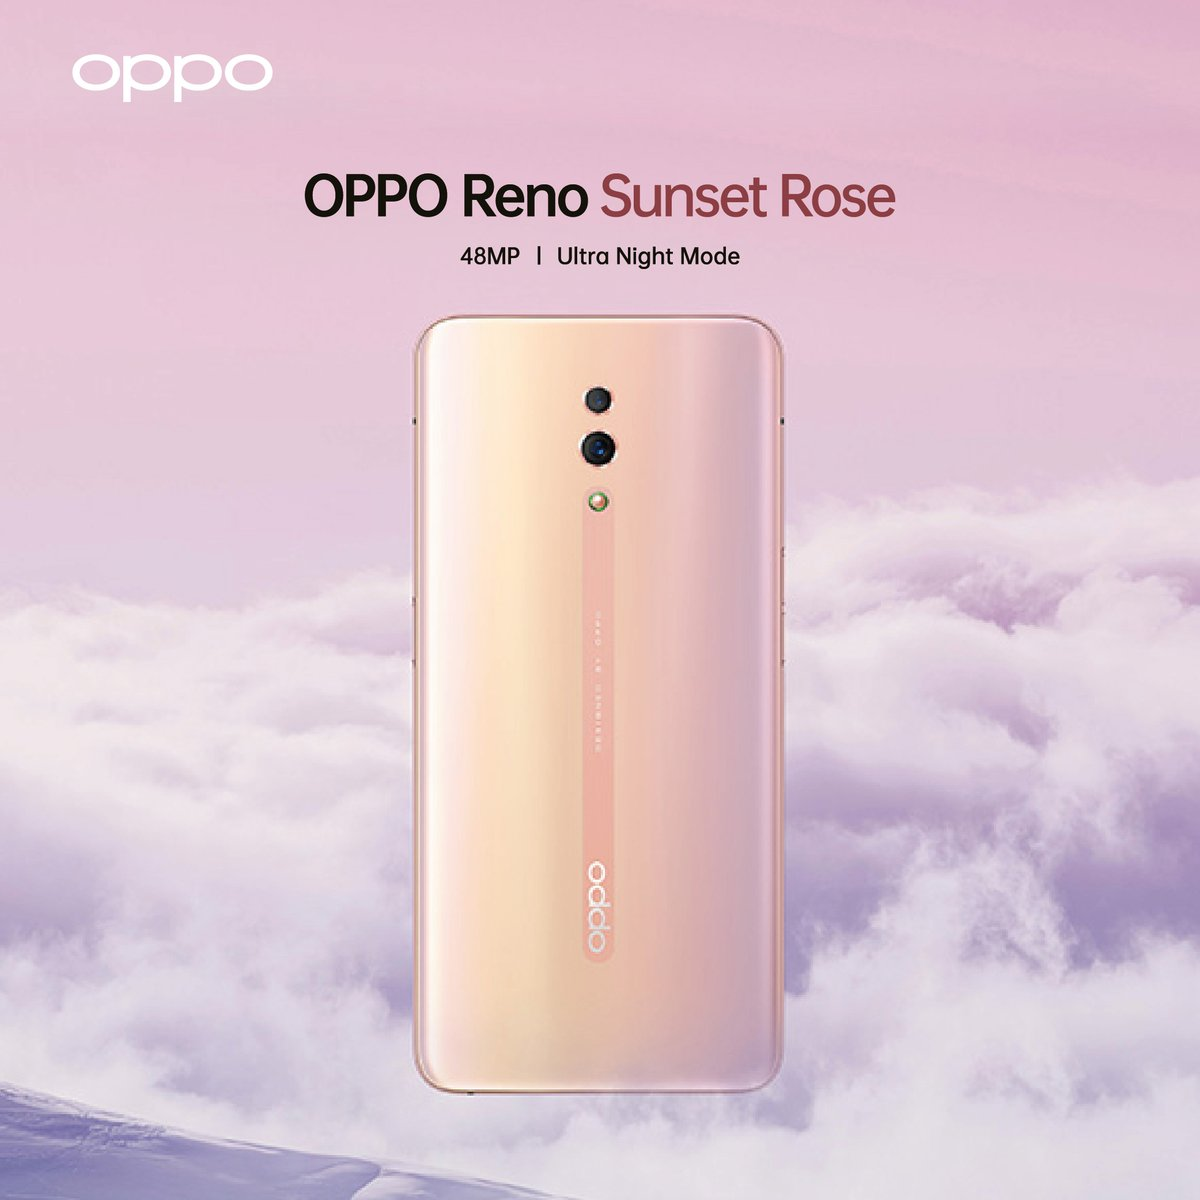 OPPO Reno Sunset Rose